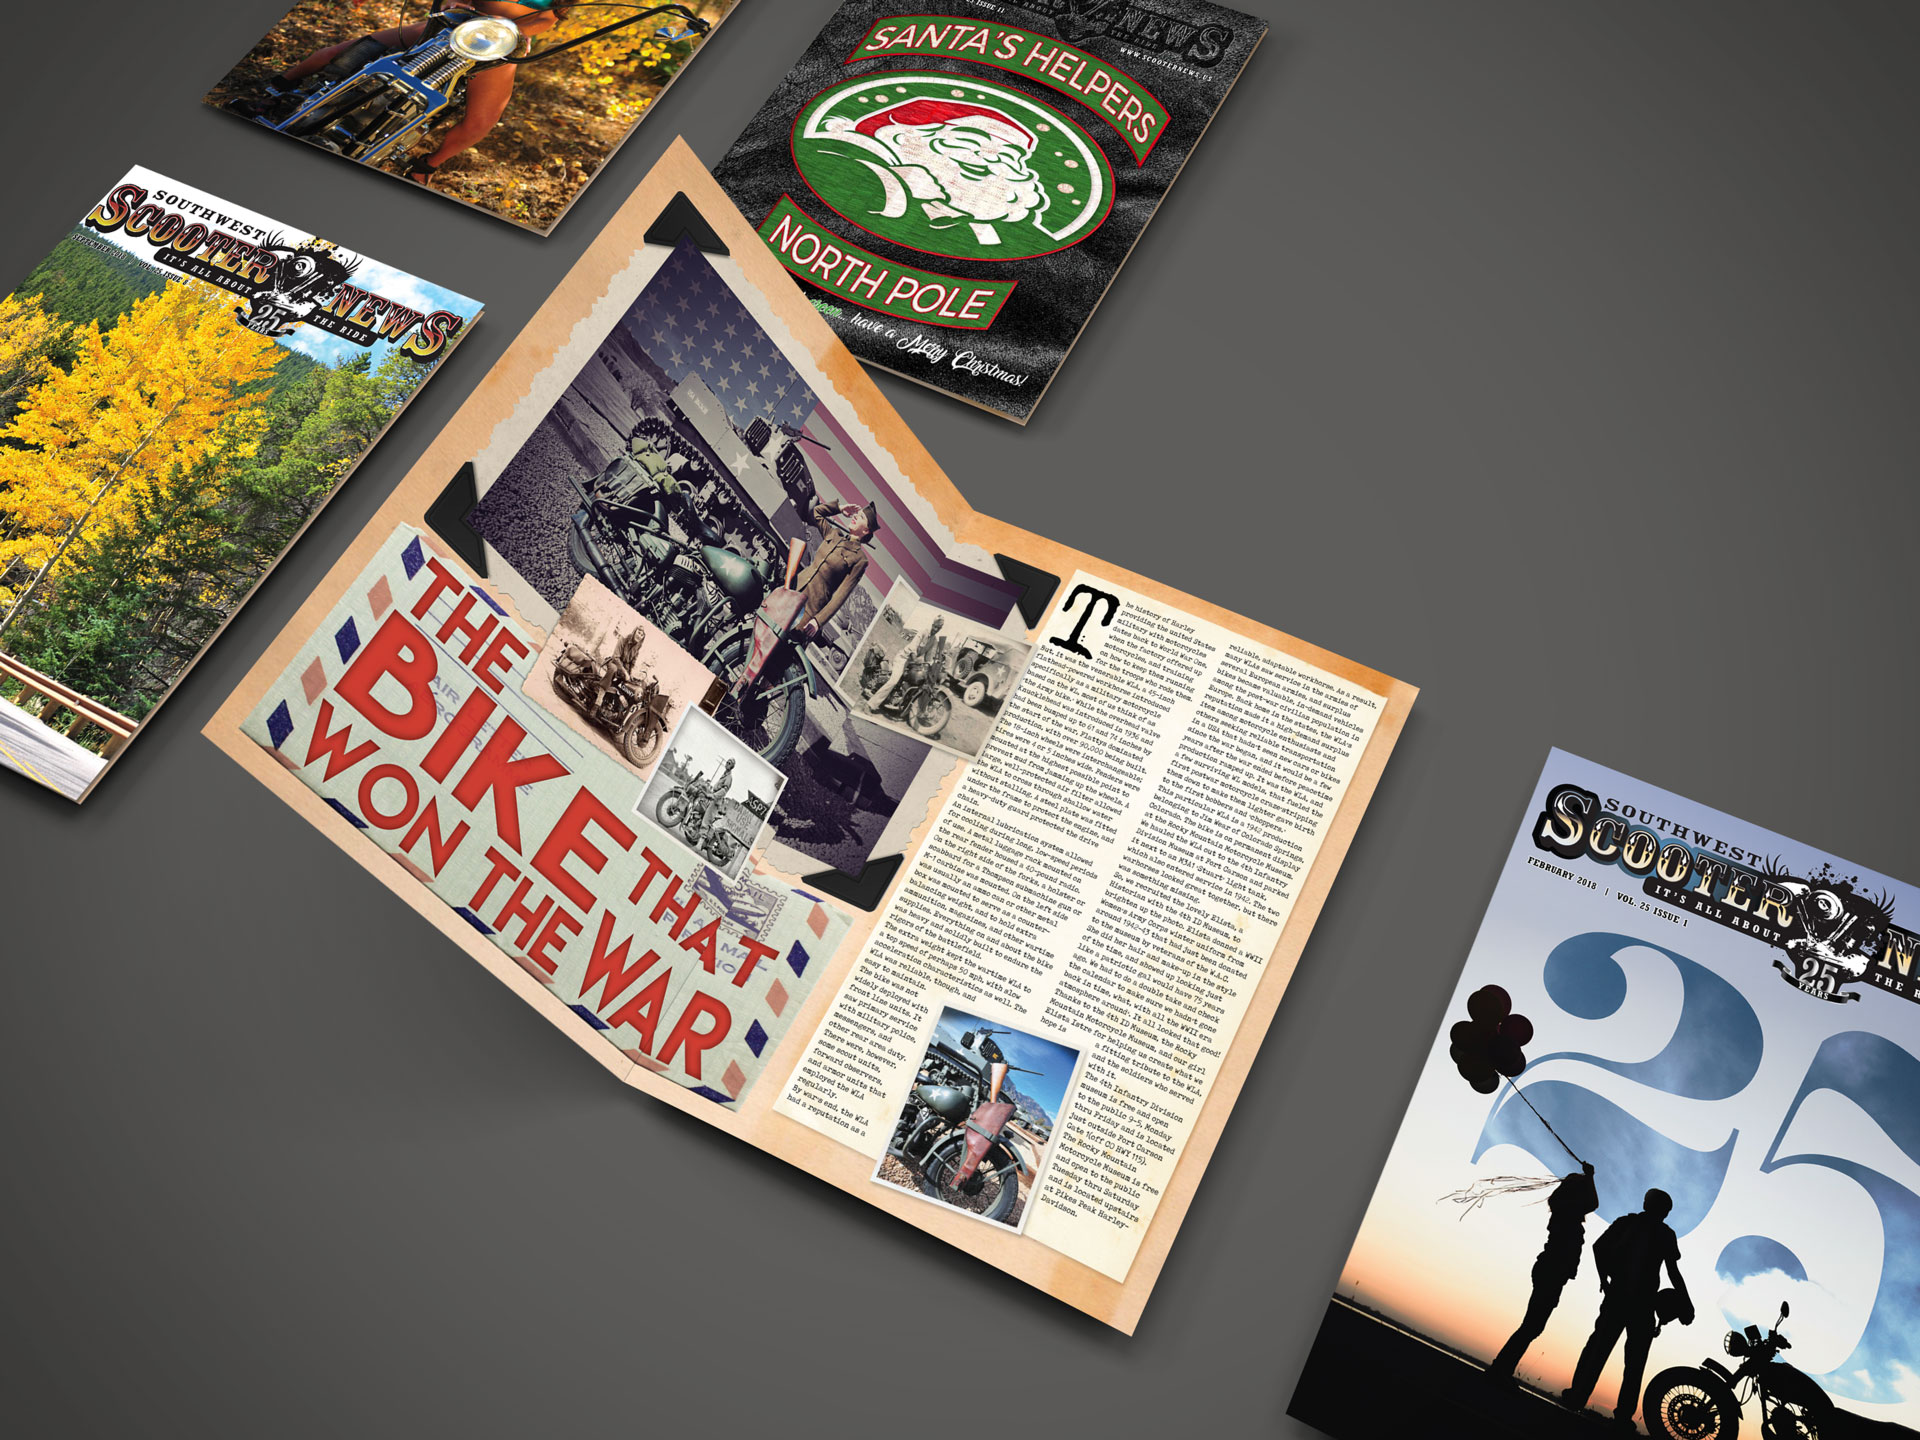 Scooter News Cover and Feature